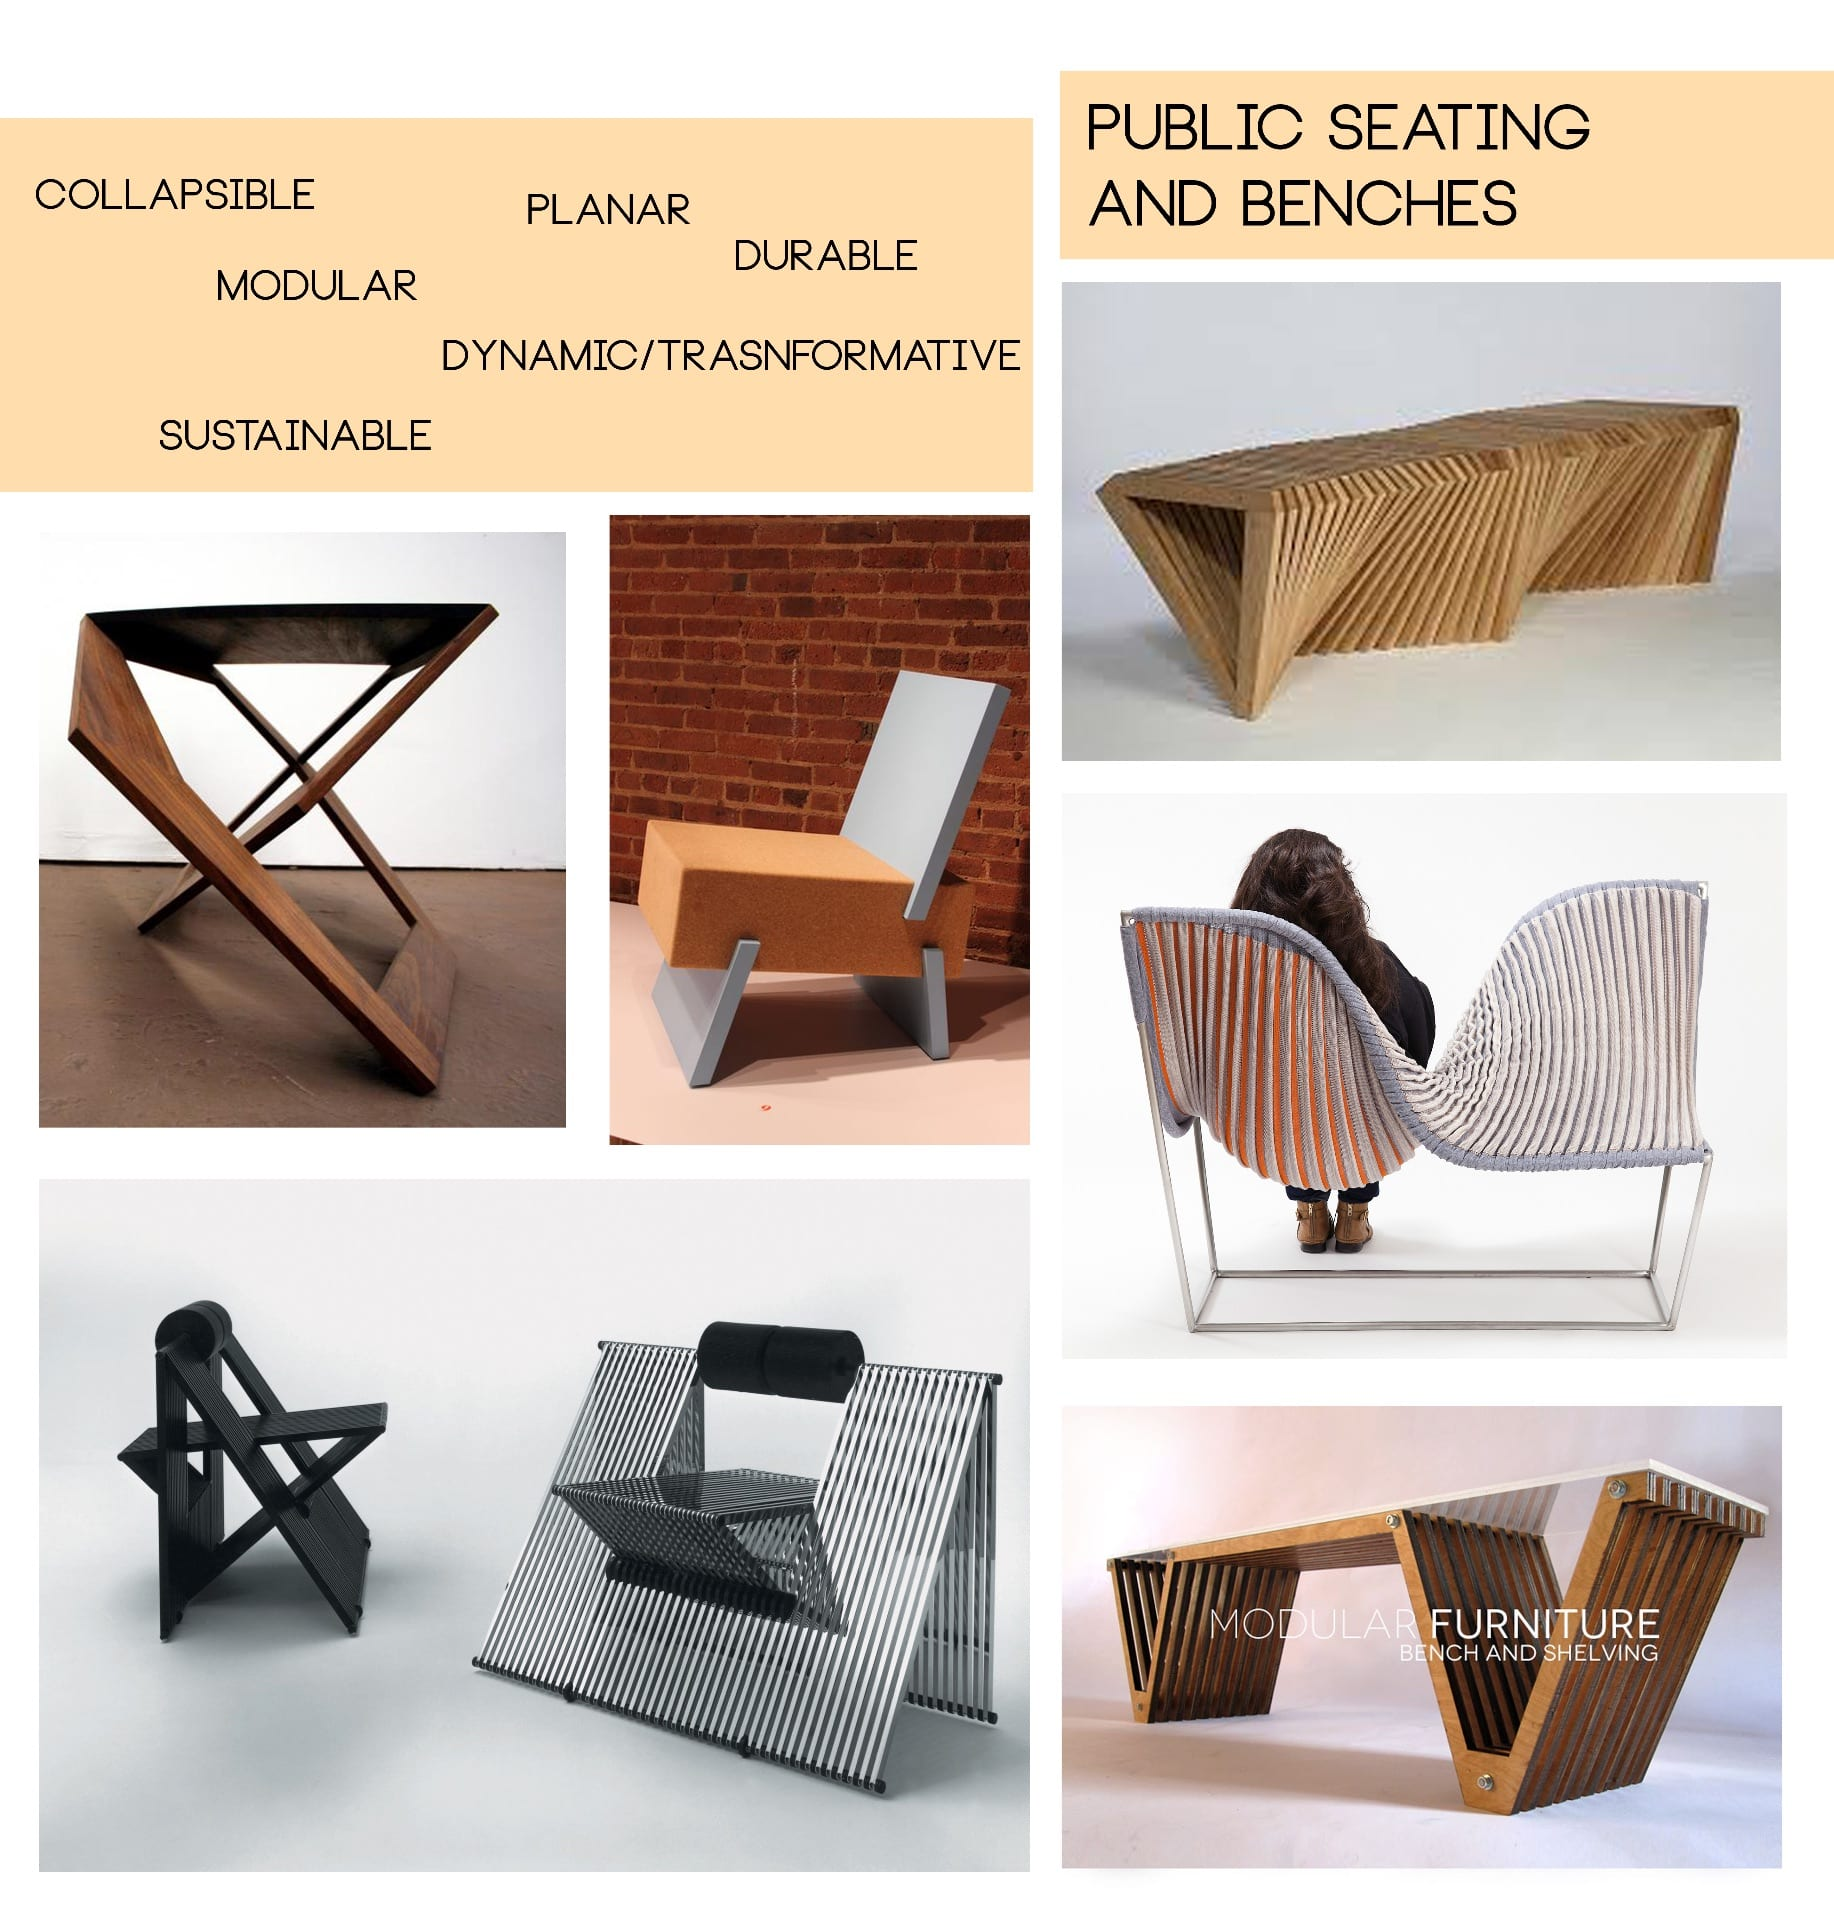 Project 3—Group Project—Modular Public Seating